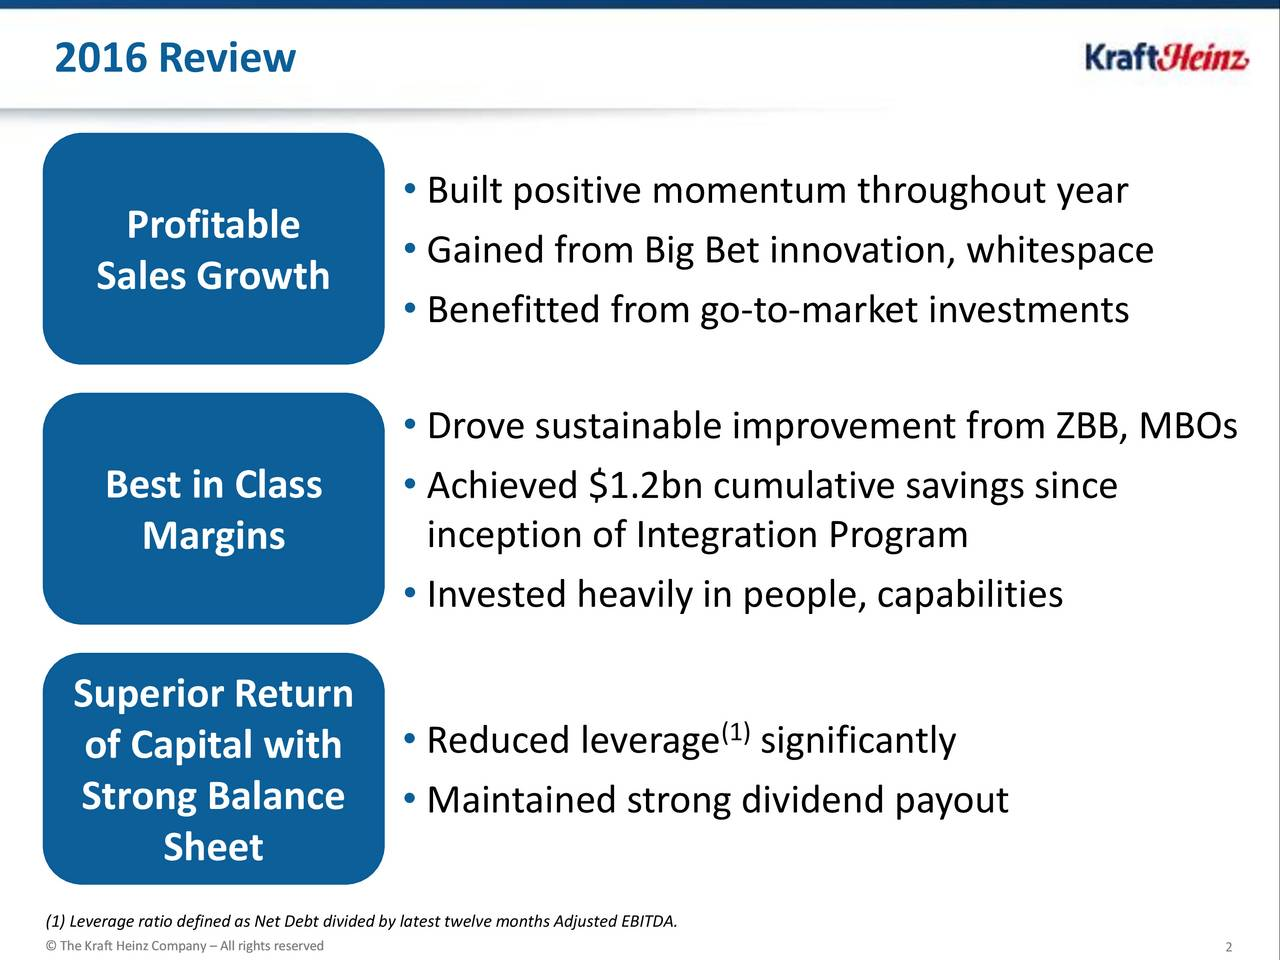 Built positive momentum throughout year Profitable Gained from Big Bet innovation, whitespace Sales Growth Benefitted from go-to-market investments Drove sustainable improvement from ZBB, MBOs Best in Class  Achieved $1.2bn cumulative savings since Margins inception of Integration Program Invested heavily in people, capabilities Superior Return (1) of Capital with  Reduced leverage significantly Strong Balance  Maintained strong dividend payout Sheet (1) Leverage ratio defined as Net Debt divided by latest twelve months Adjusted EBITDA.